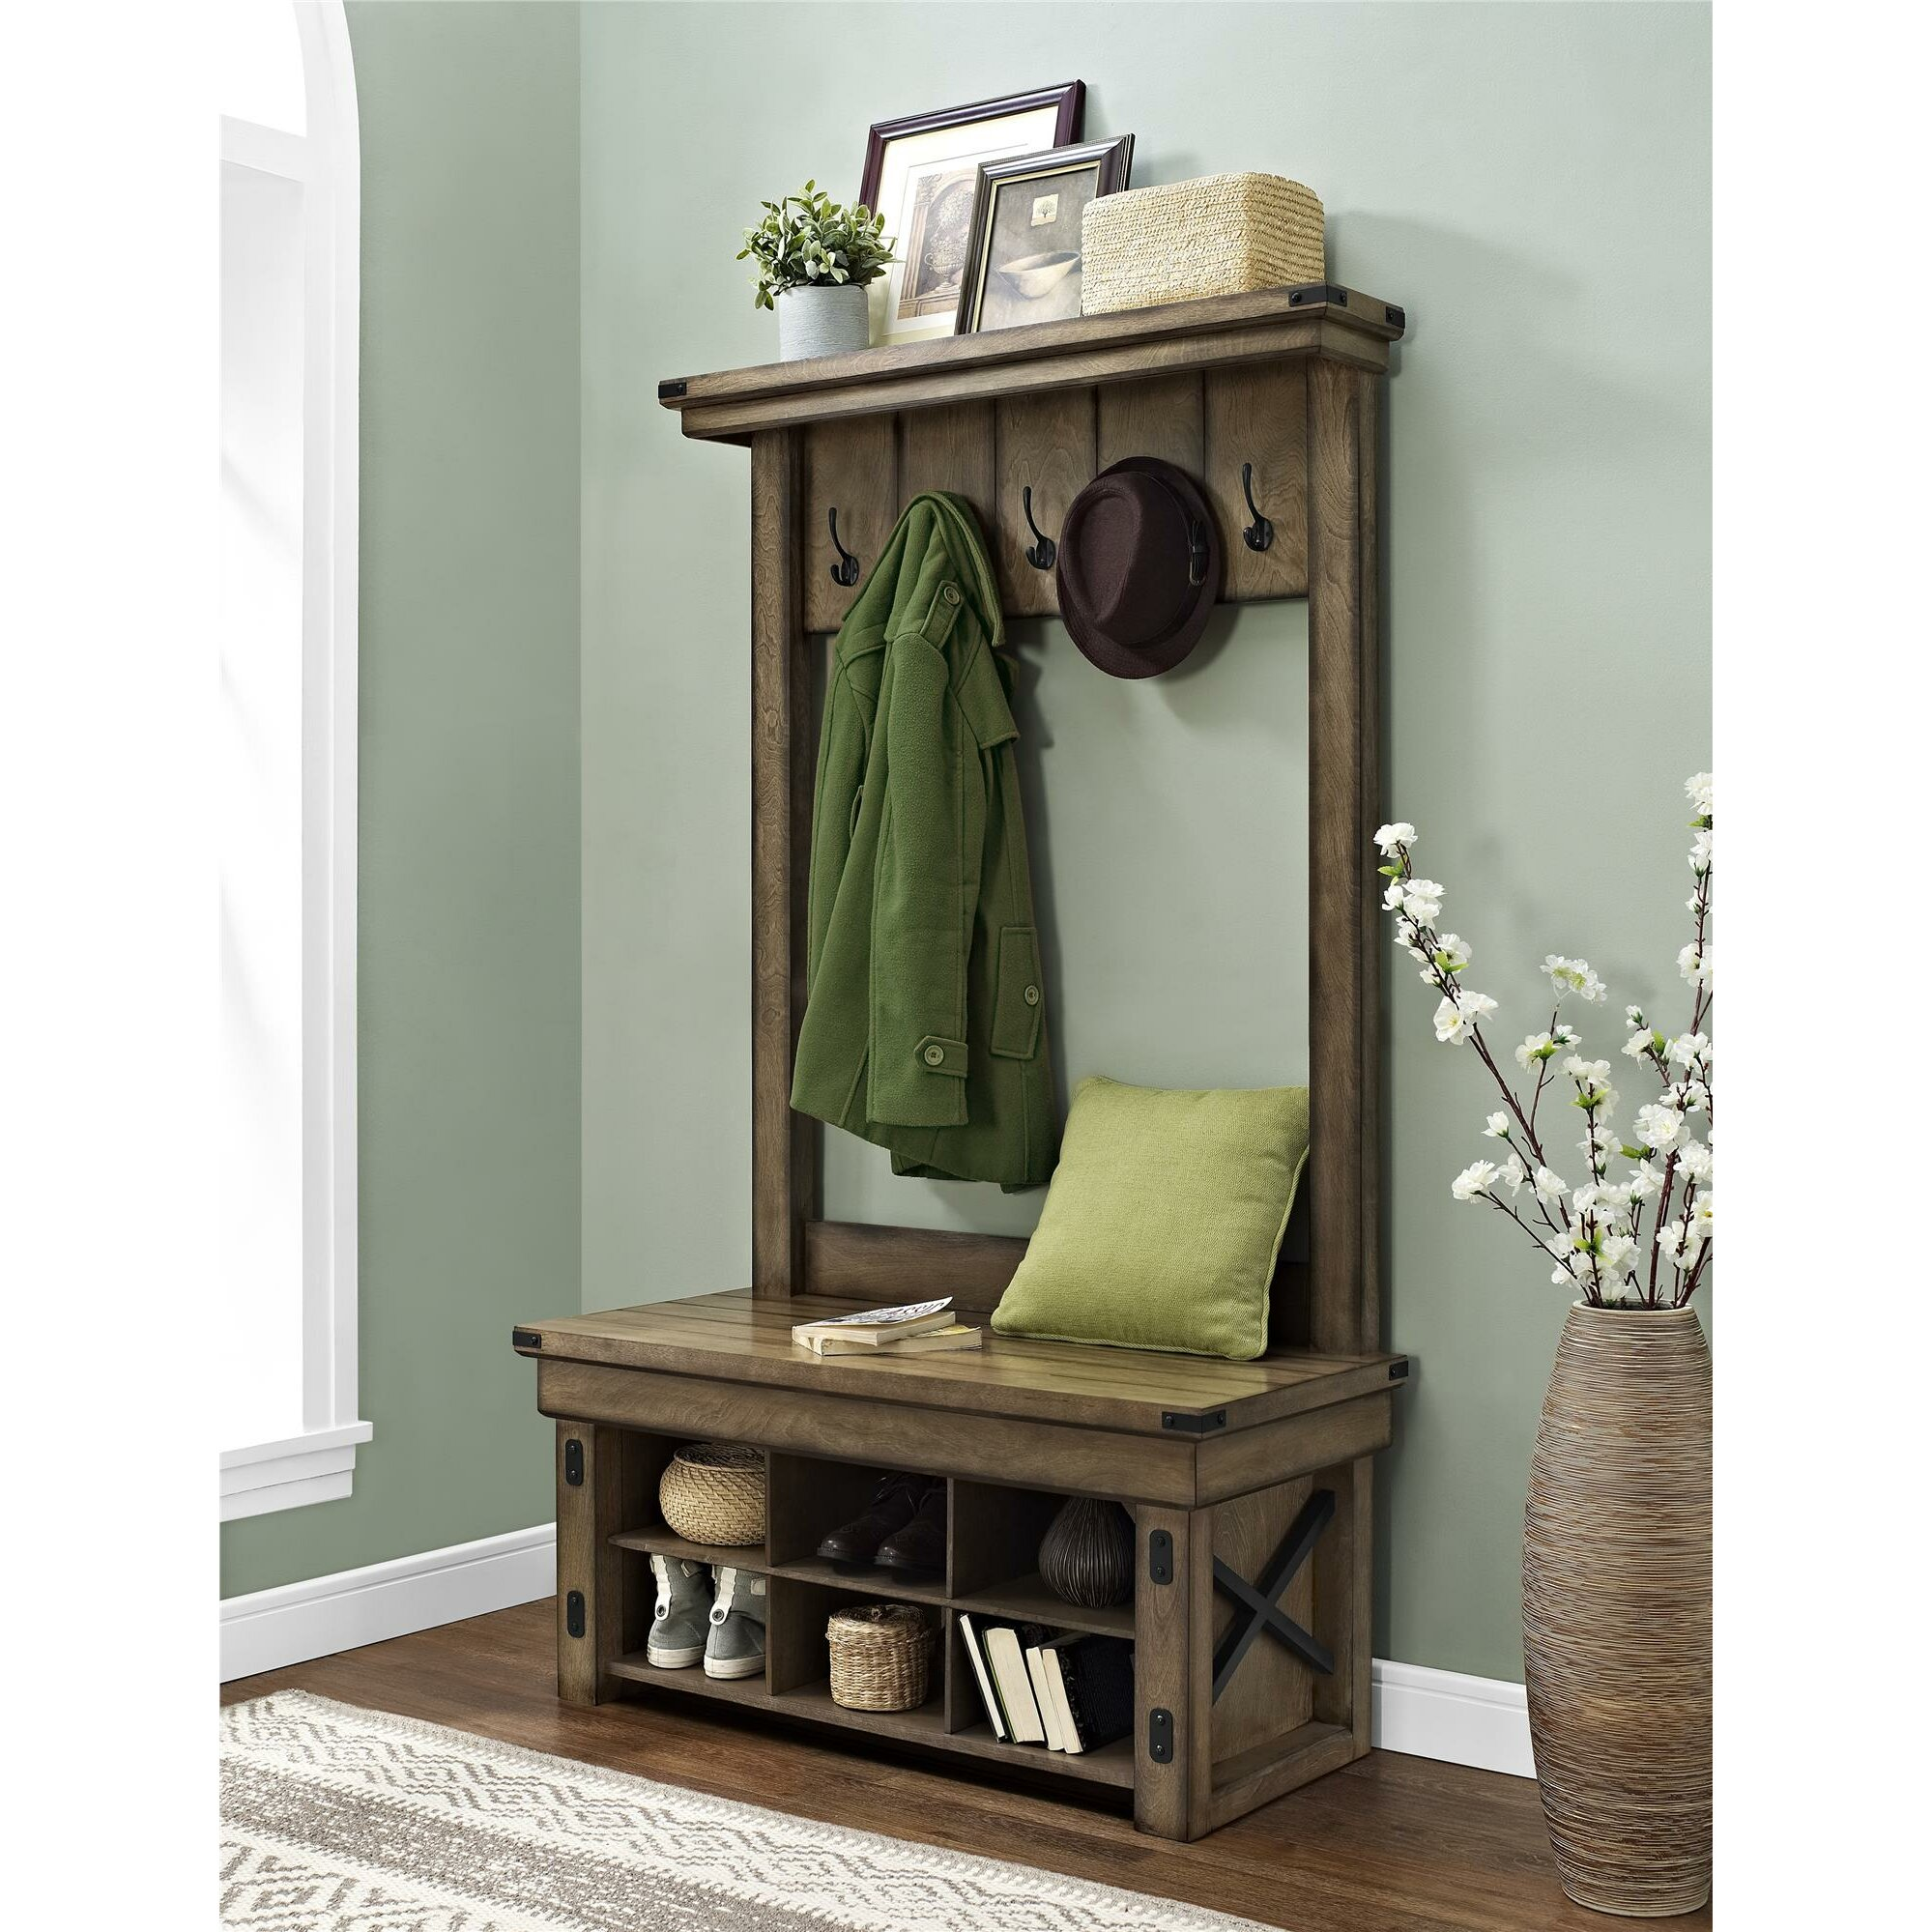 Irwin Wood Veneer Entryway Hall Tree With Storage Bench